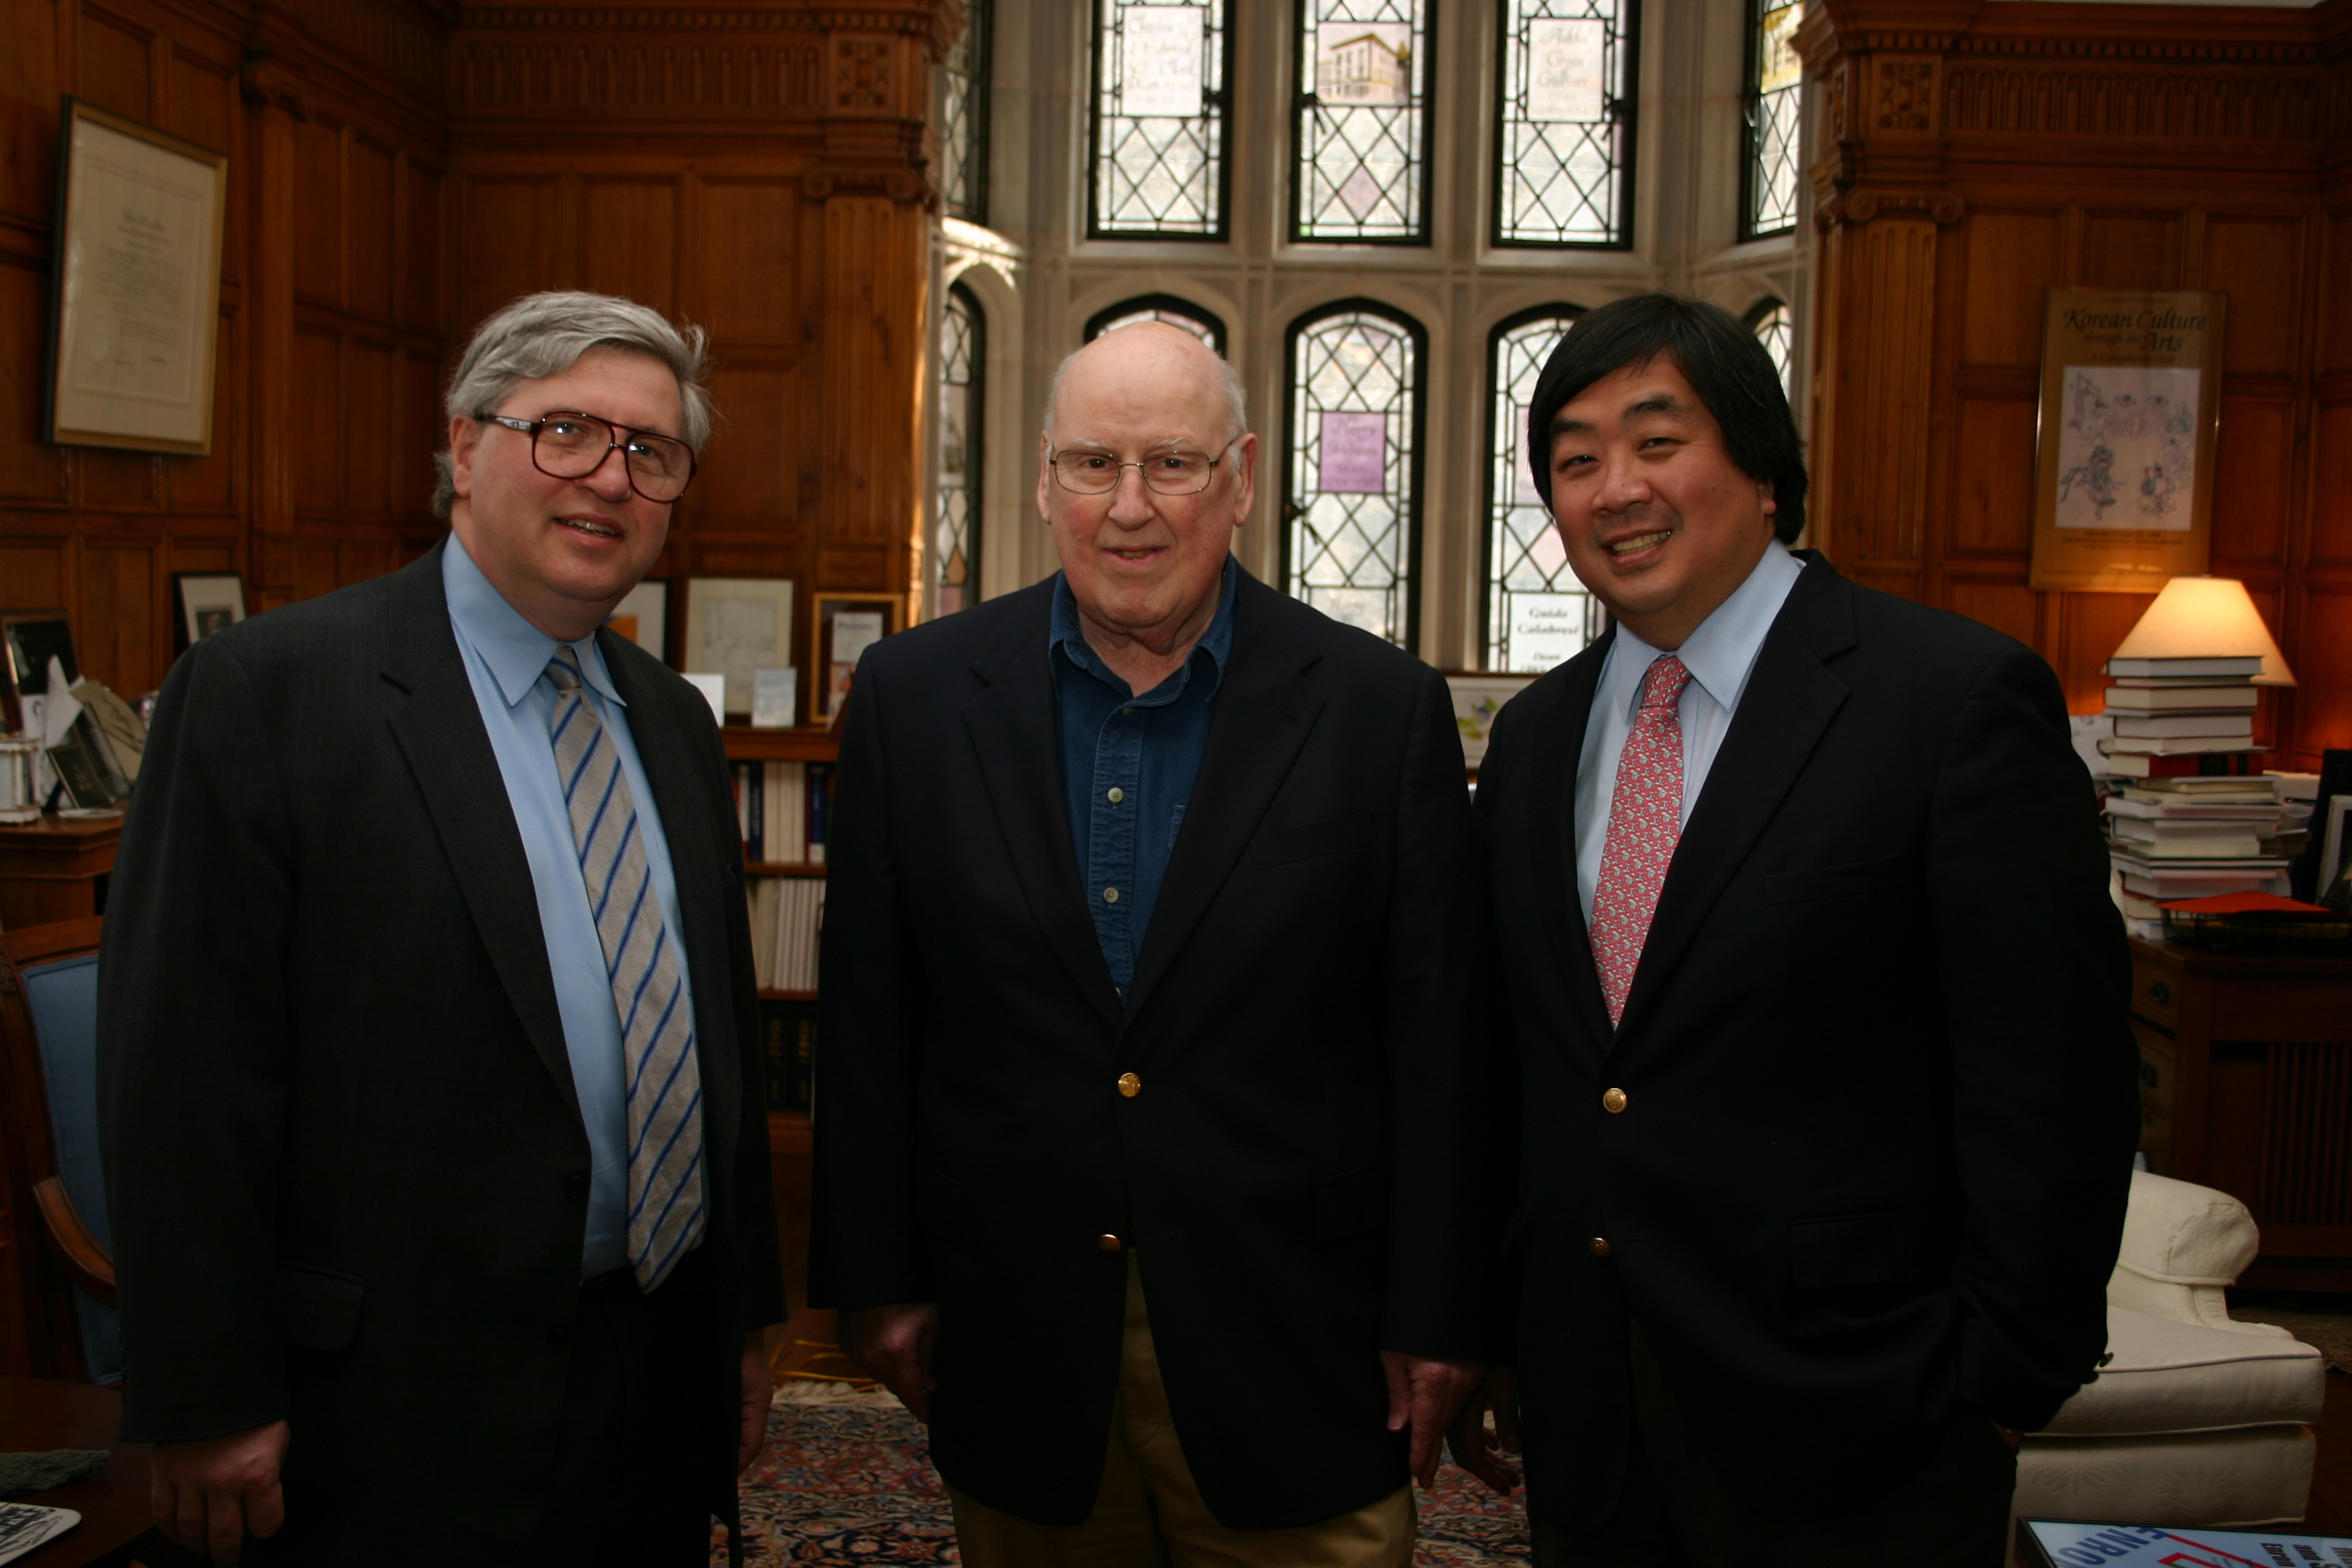 Northwestern Law Prof. Daniel Fischel, Judge Ralph Winter '60, and YLS Dean Harold Koh